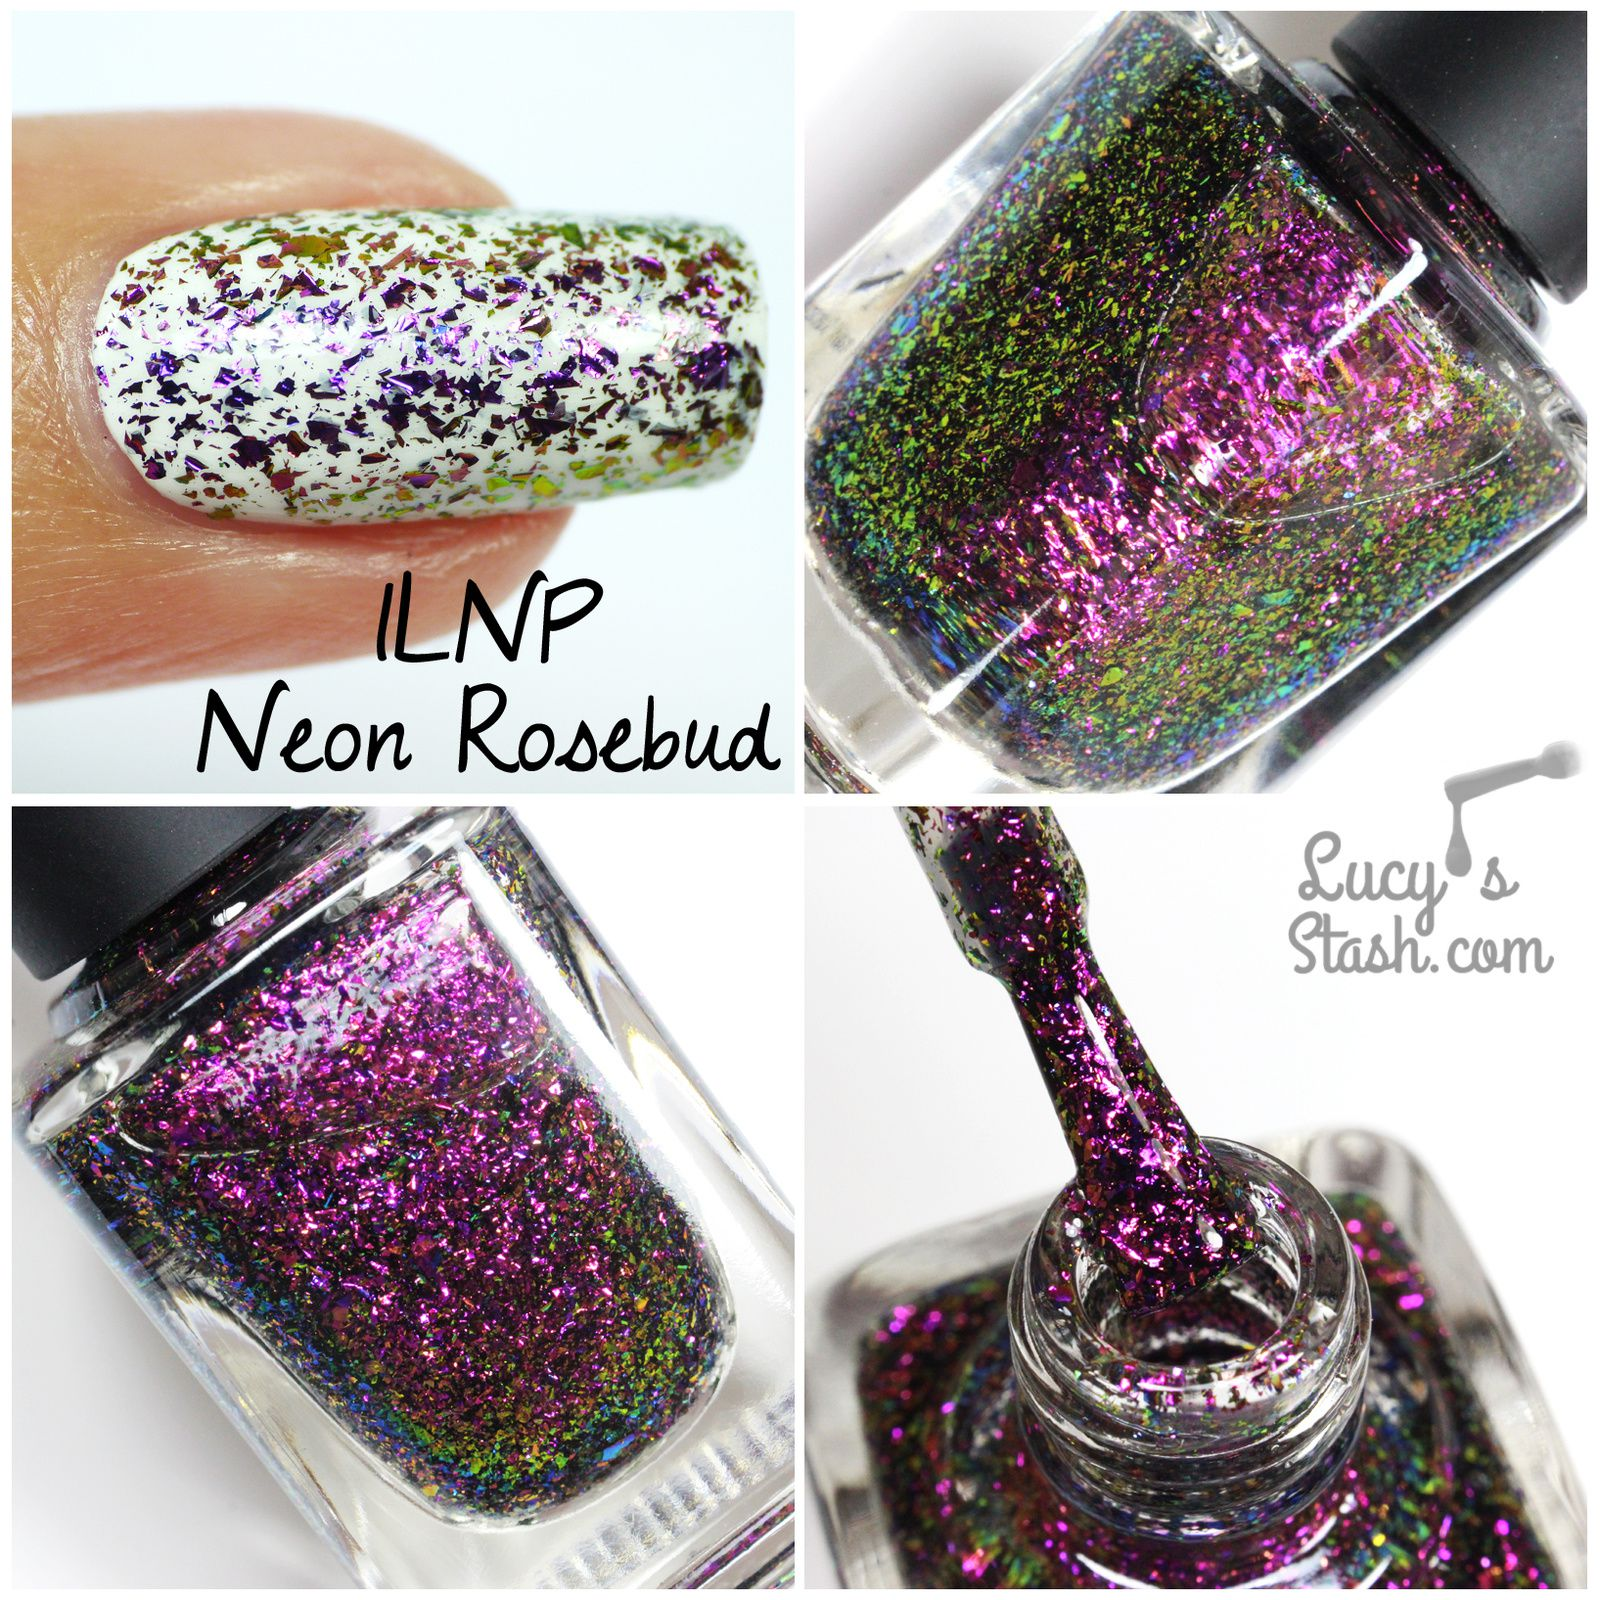 Review: ILNP Ultra Chrome Flakies - Part 2 (pic heavy)